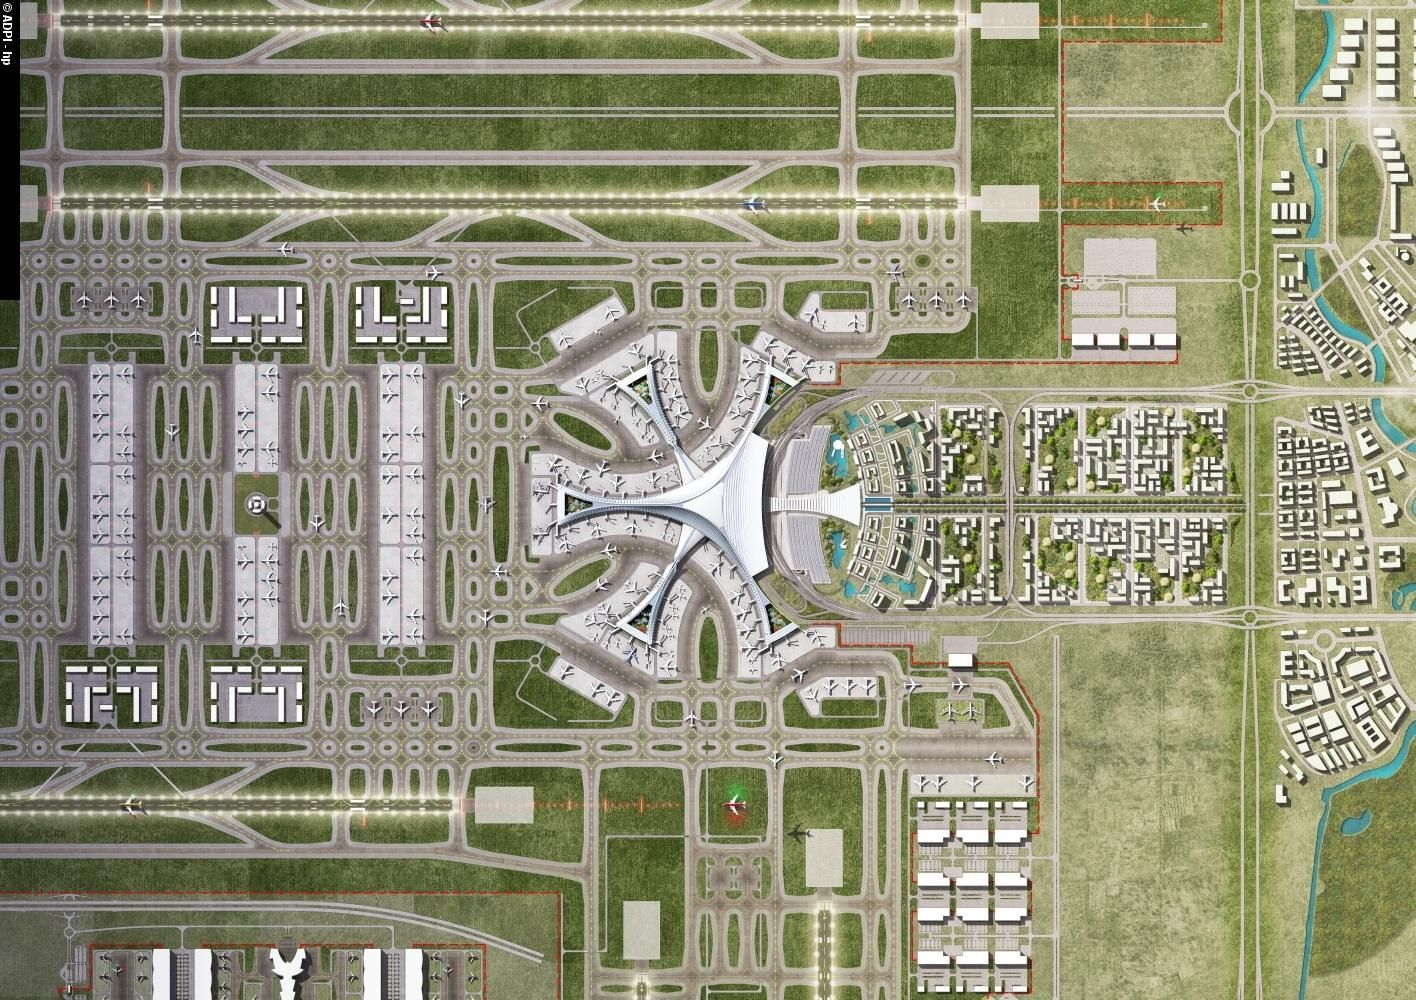 Airport Terminal Building Daxing China sn bay Pinterest